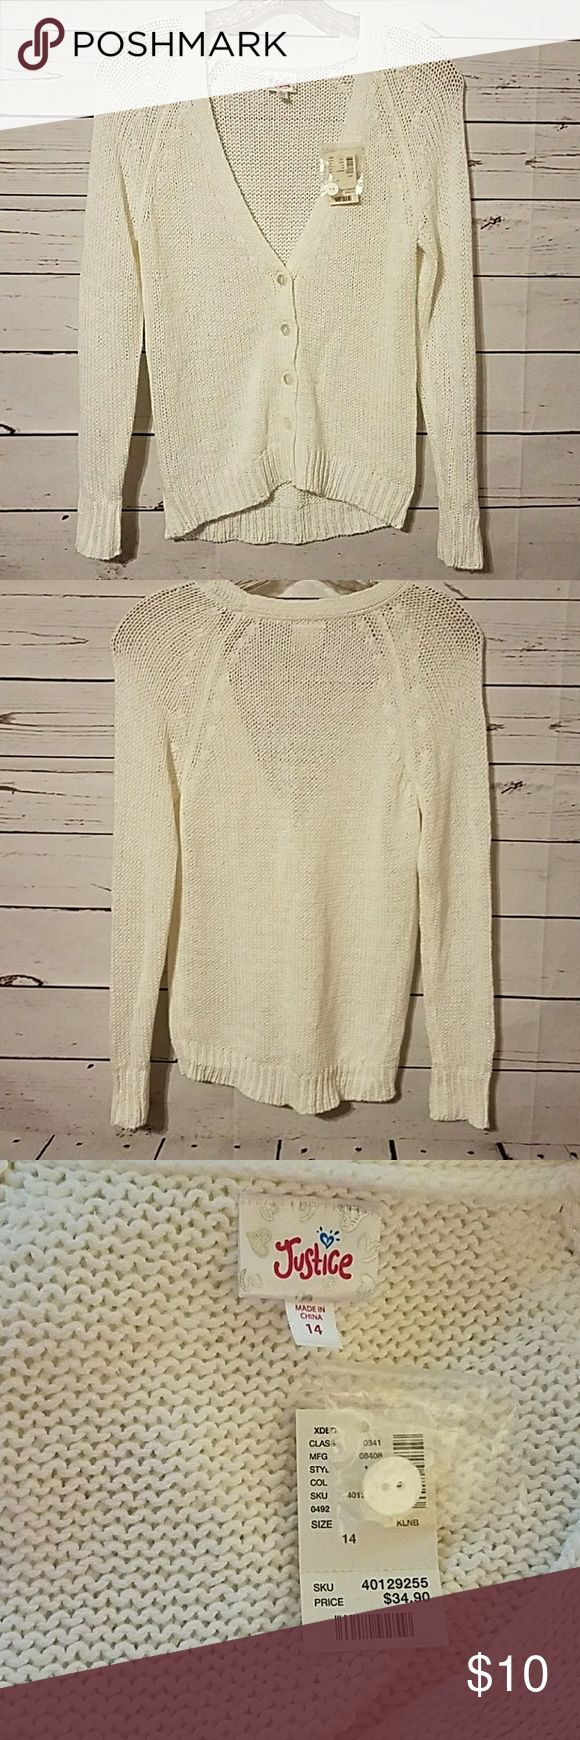 Justice Sweater Cardigan Clothes Design Fashion Design Outfits